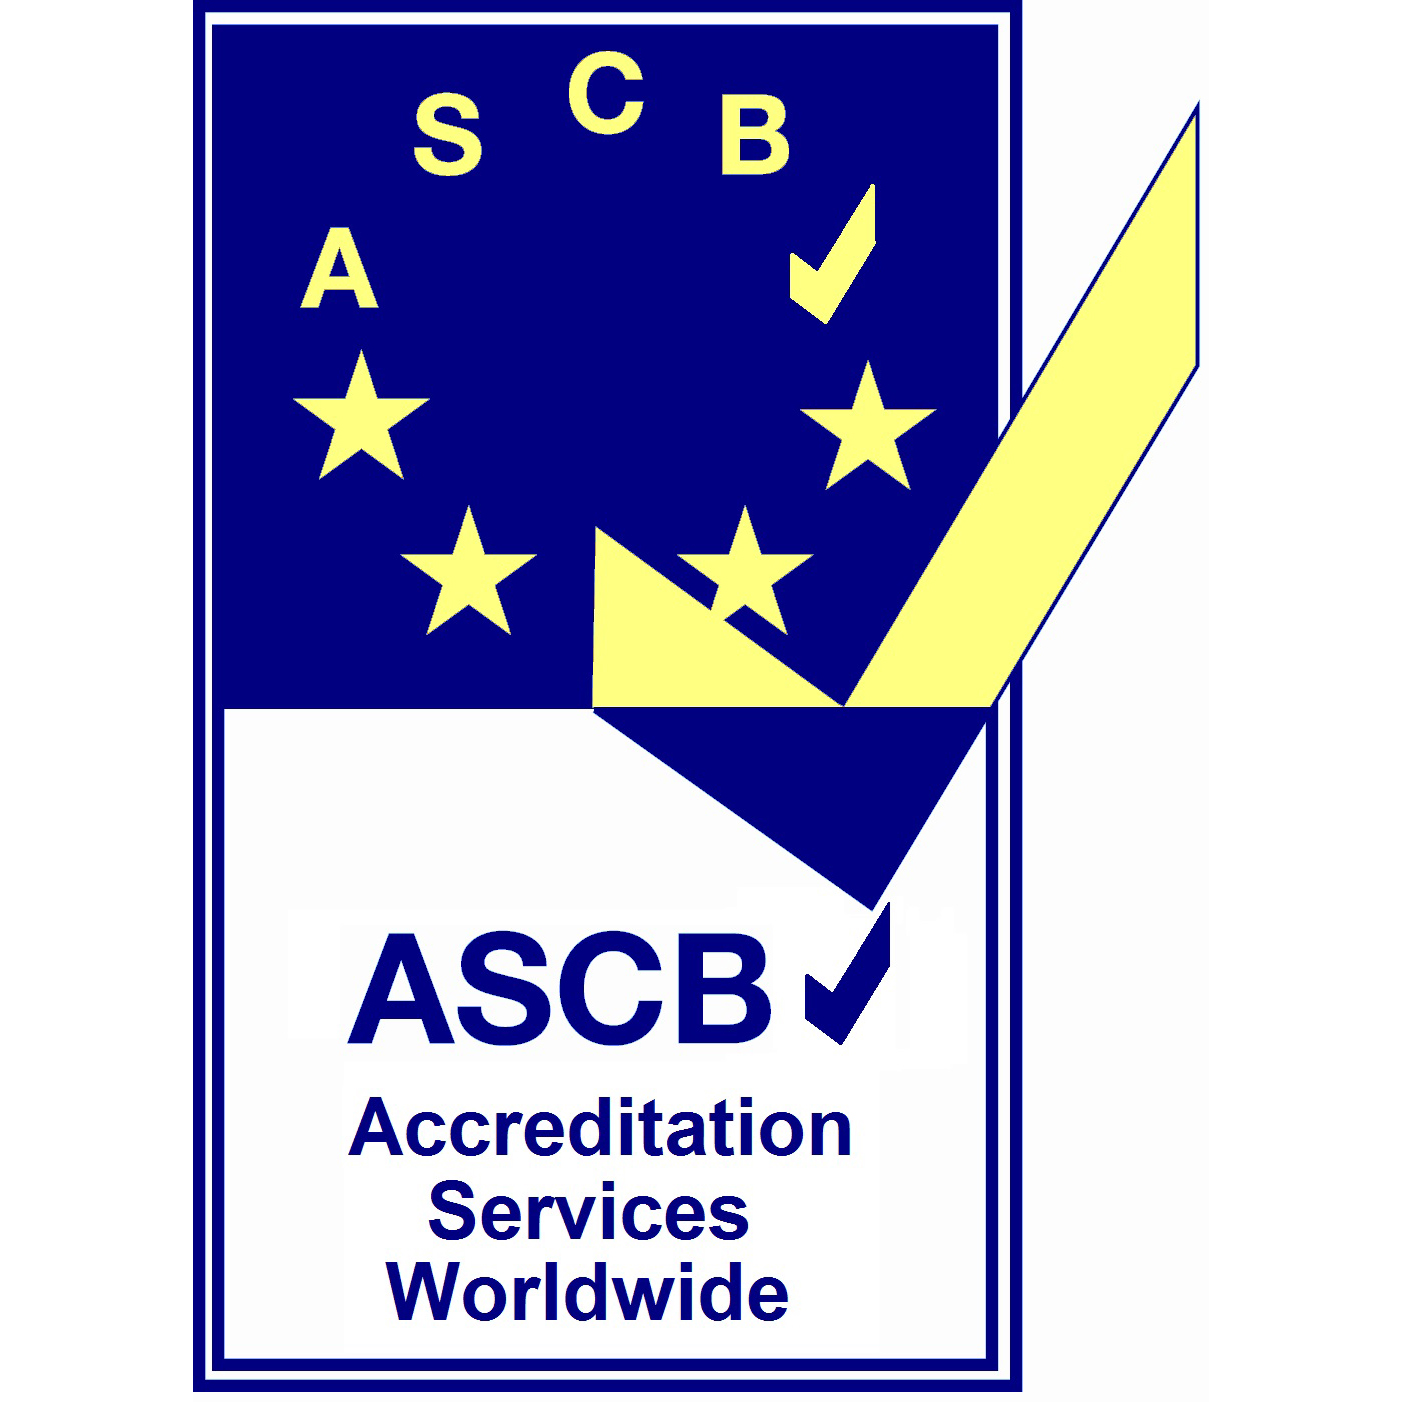 ASCB Accreditation Services Worldwide